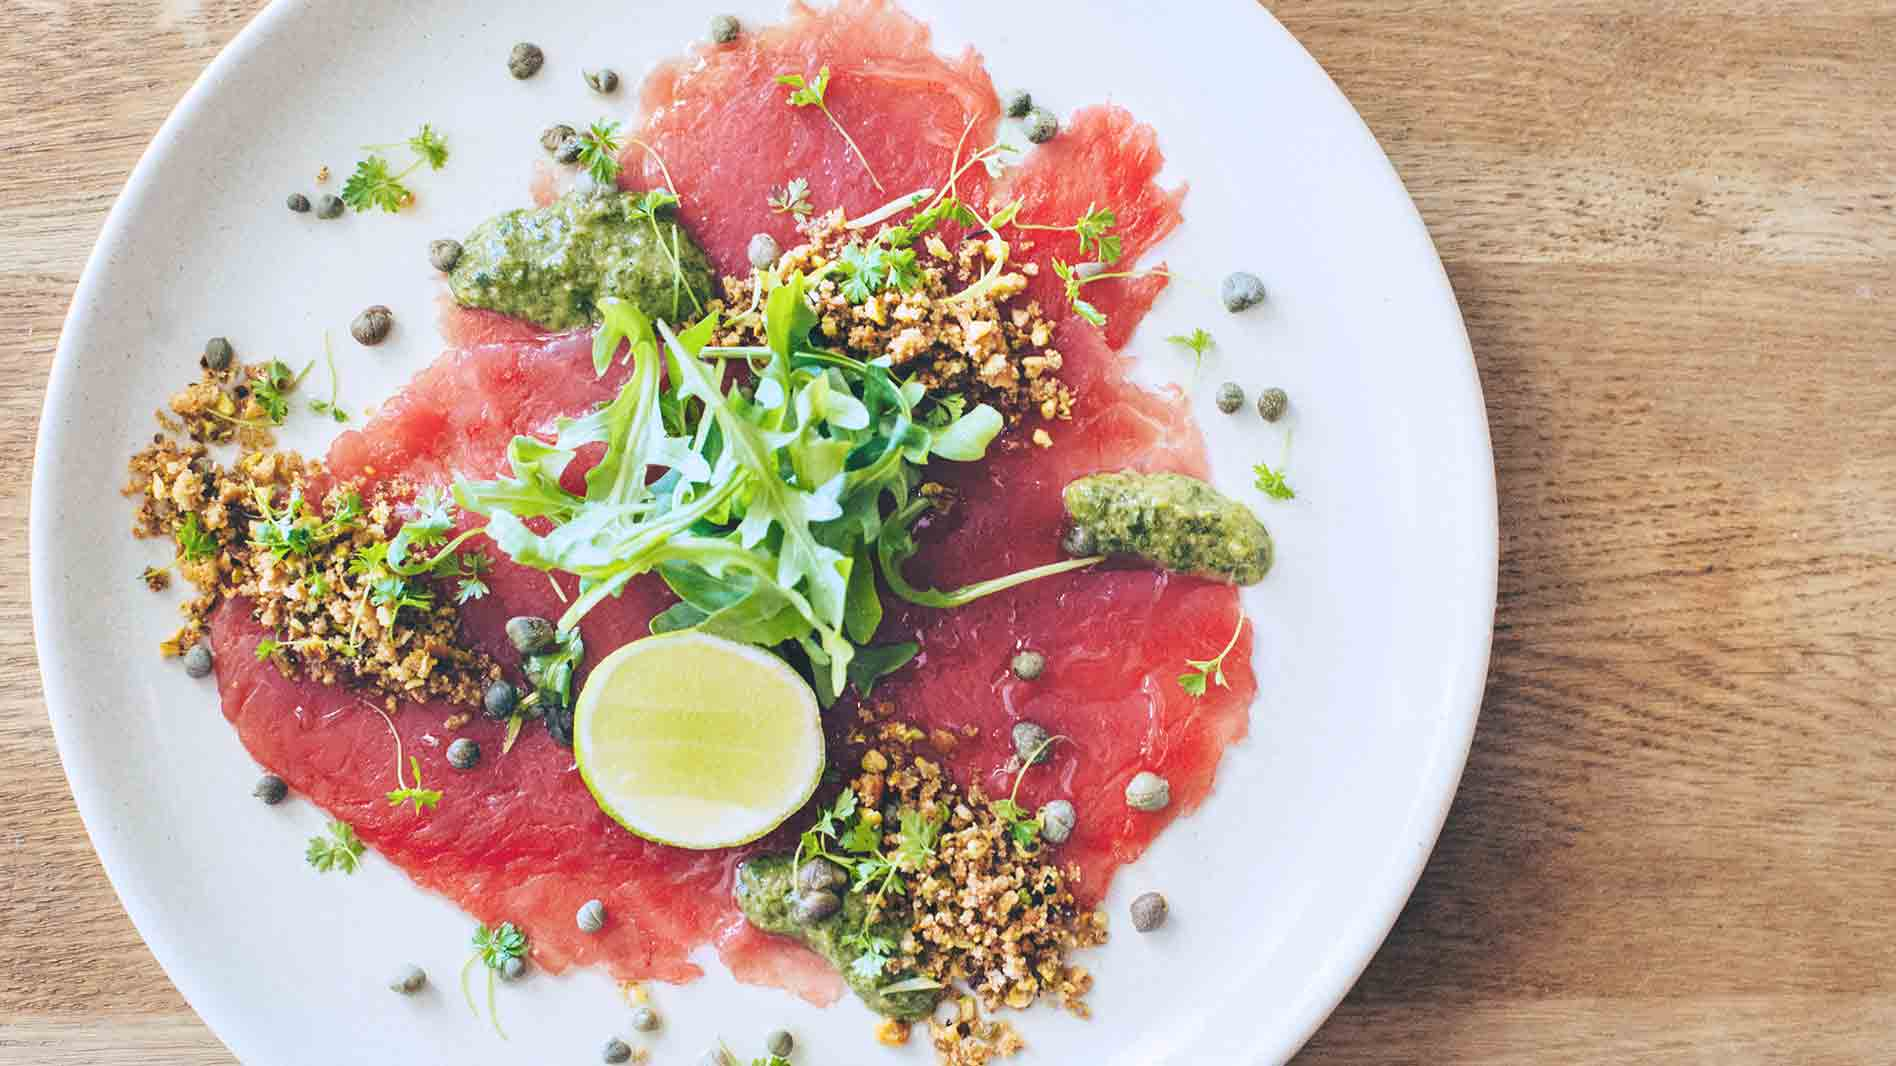 Tuna Carpaccio with Pistachio and Olive Crumble